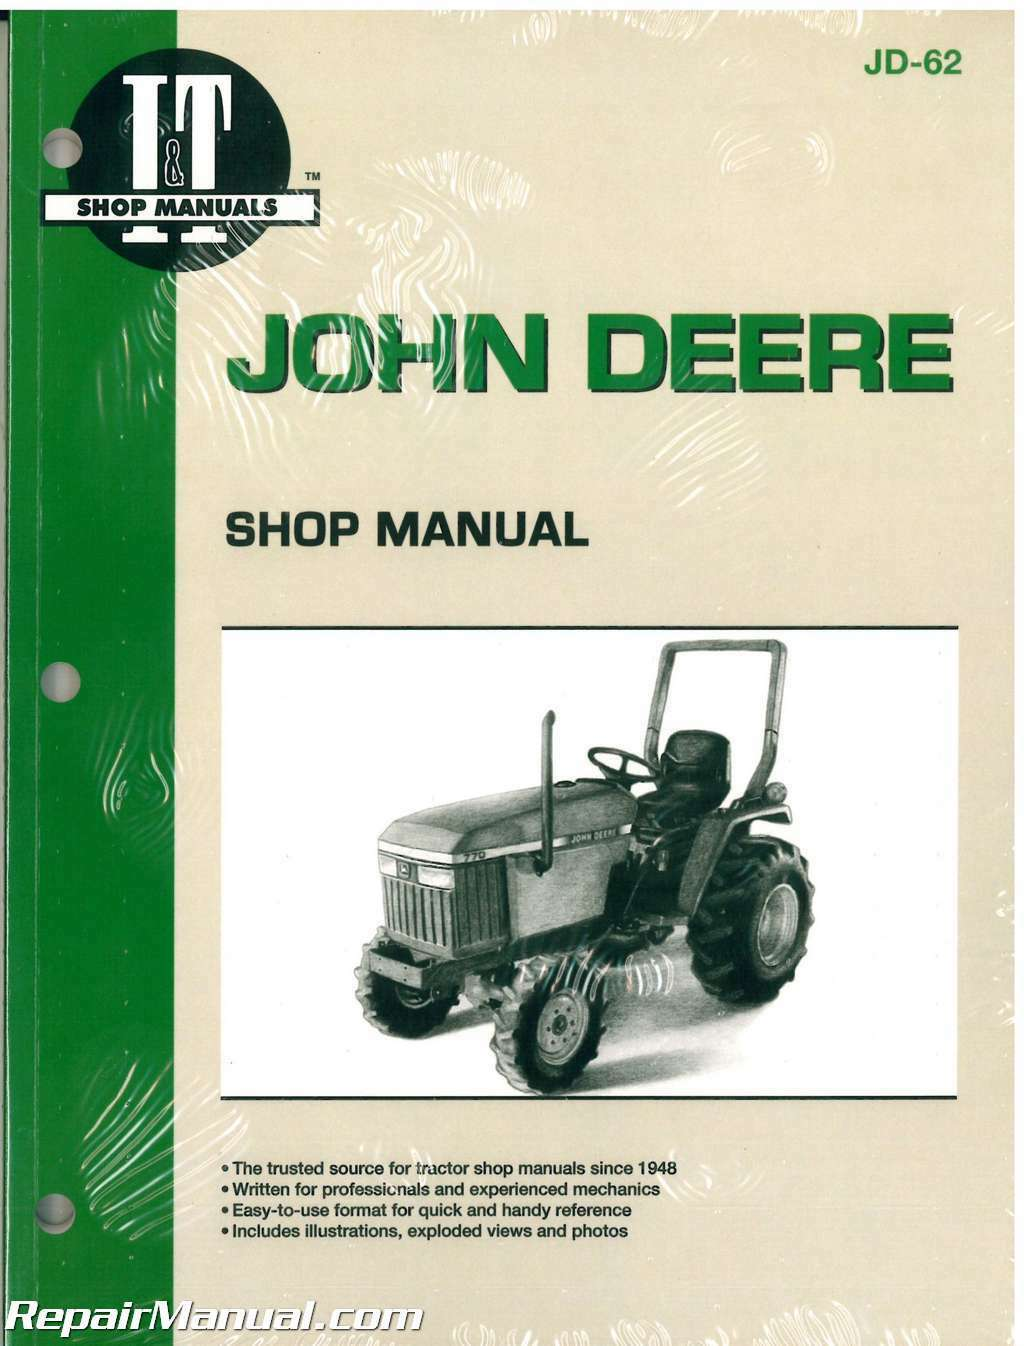 John Deere 670 770 870 970 1070 Tractor Workshop Service Manual : JD-62 1  of 1Only 5 available ...